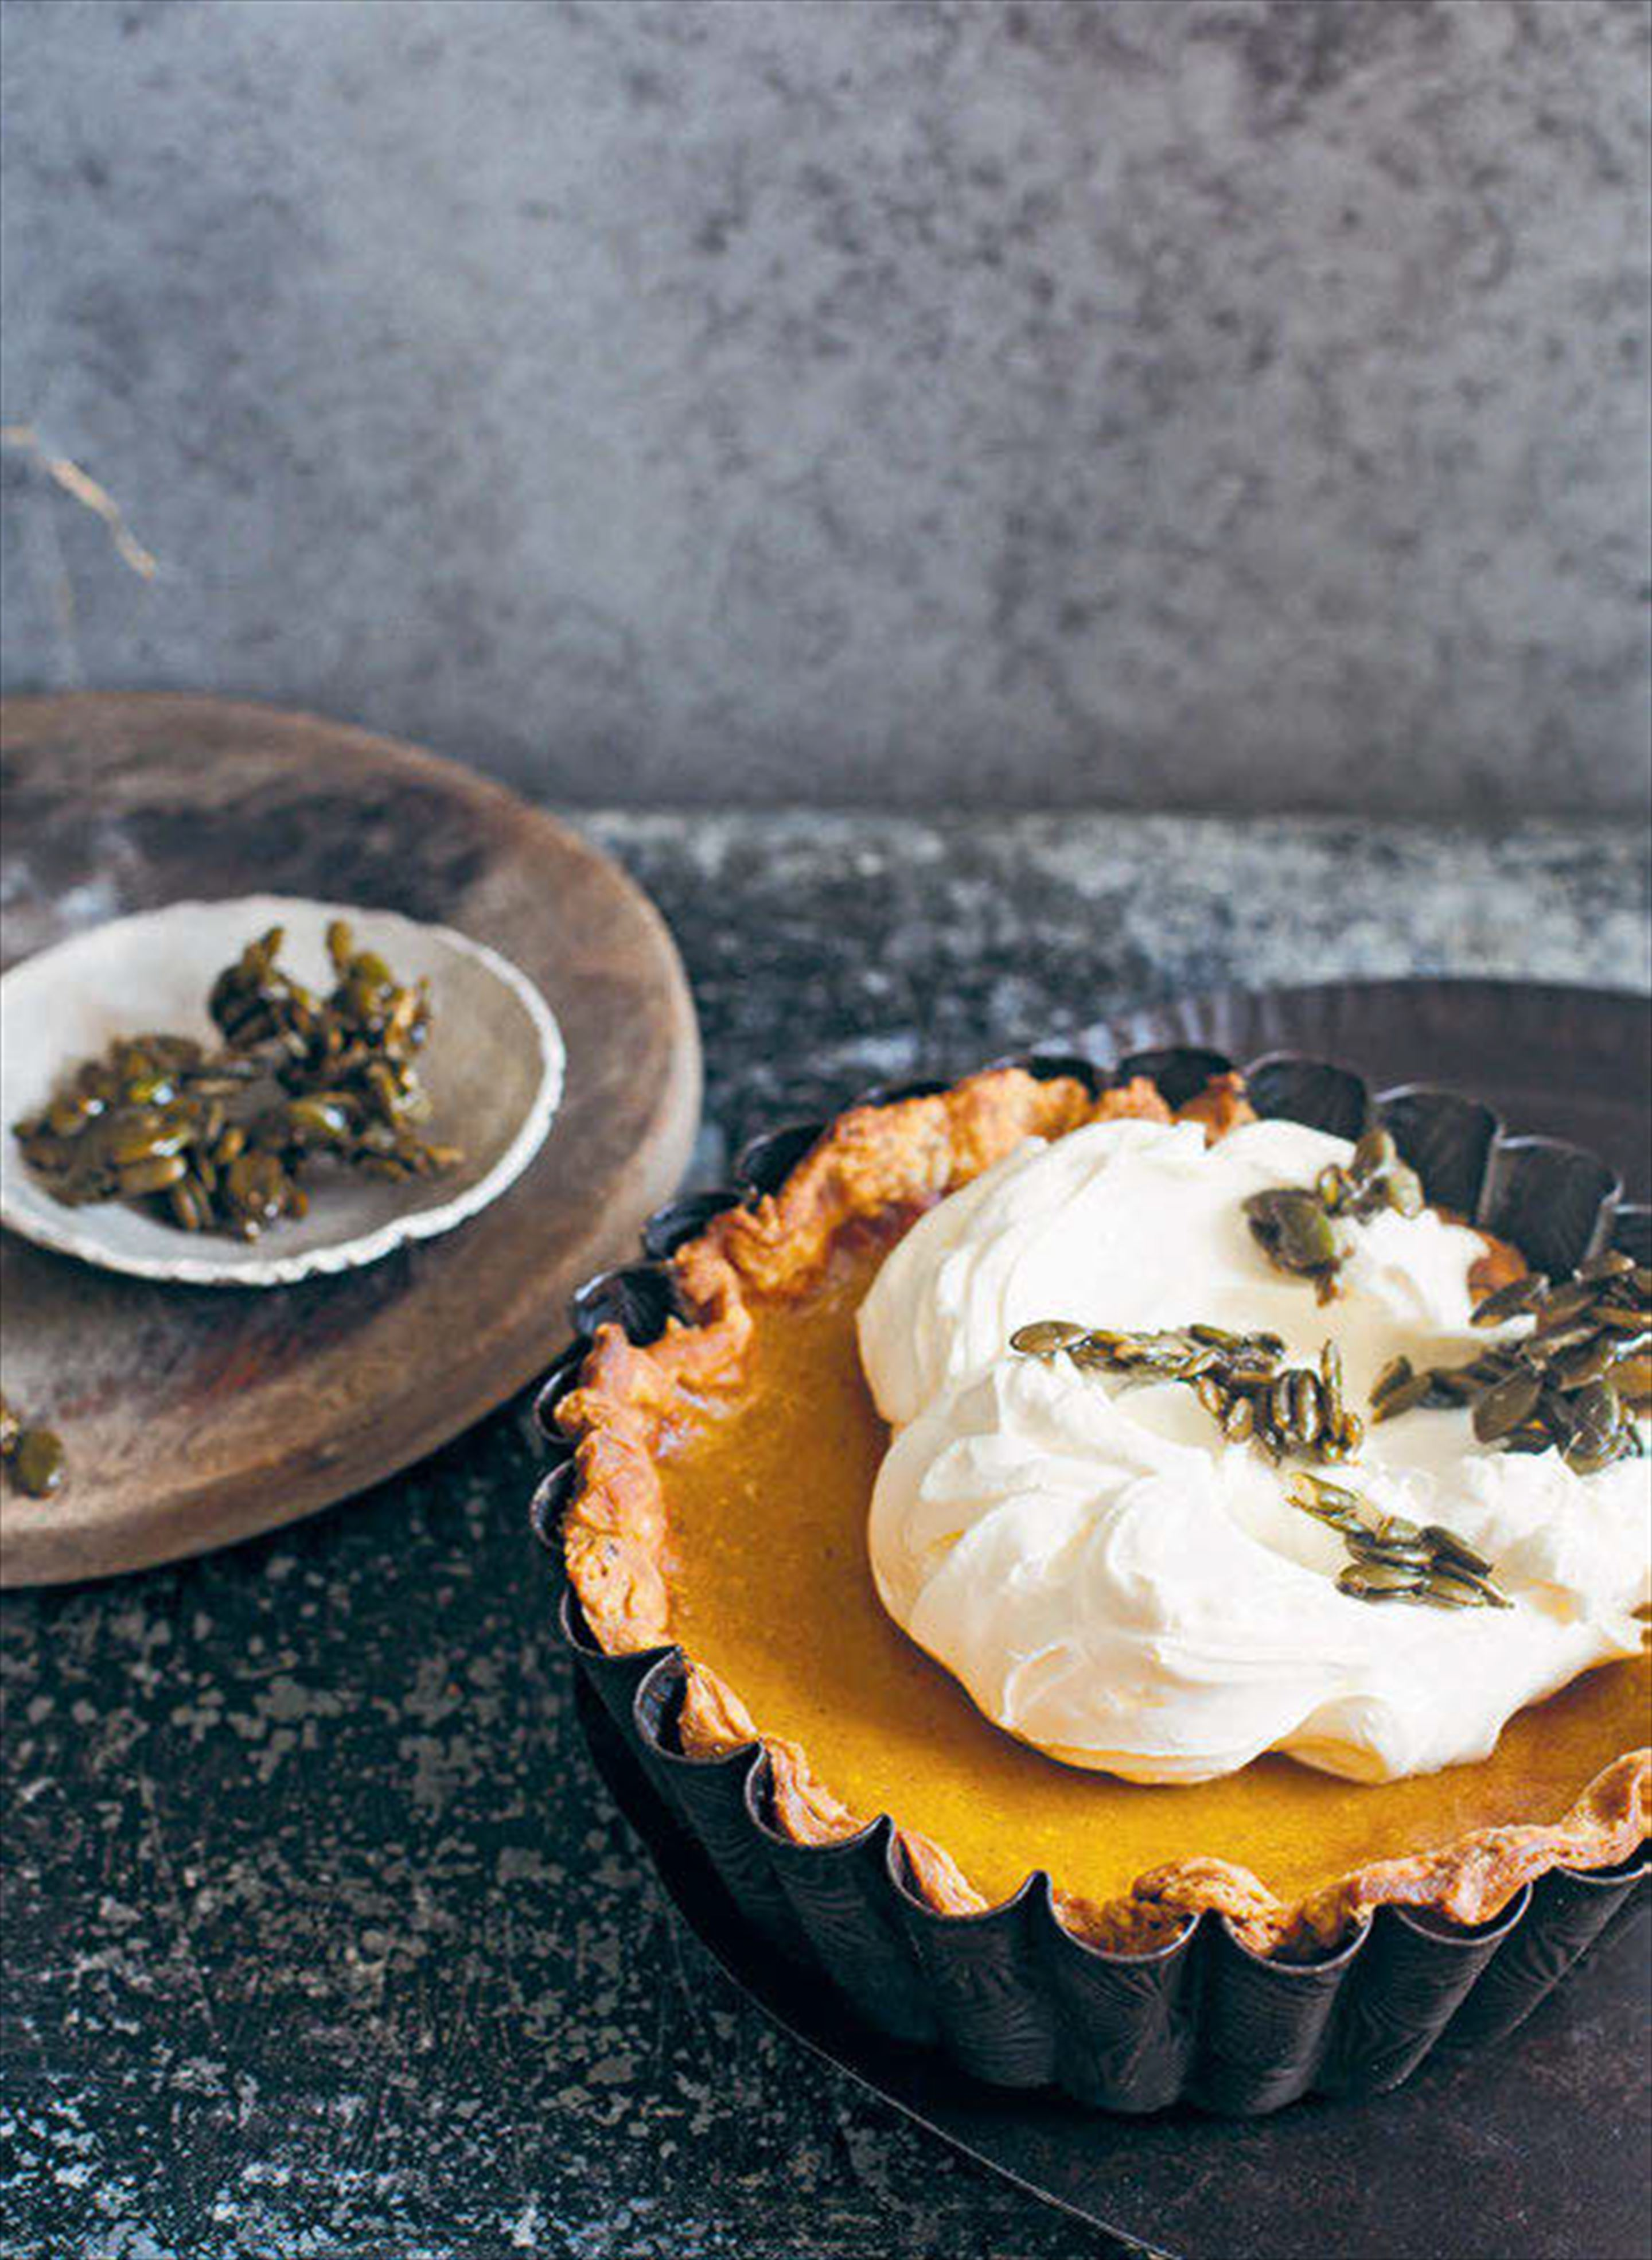 Pumpkin pie with candied pepitas